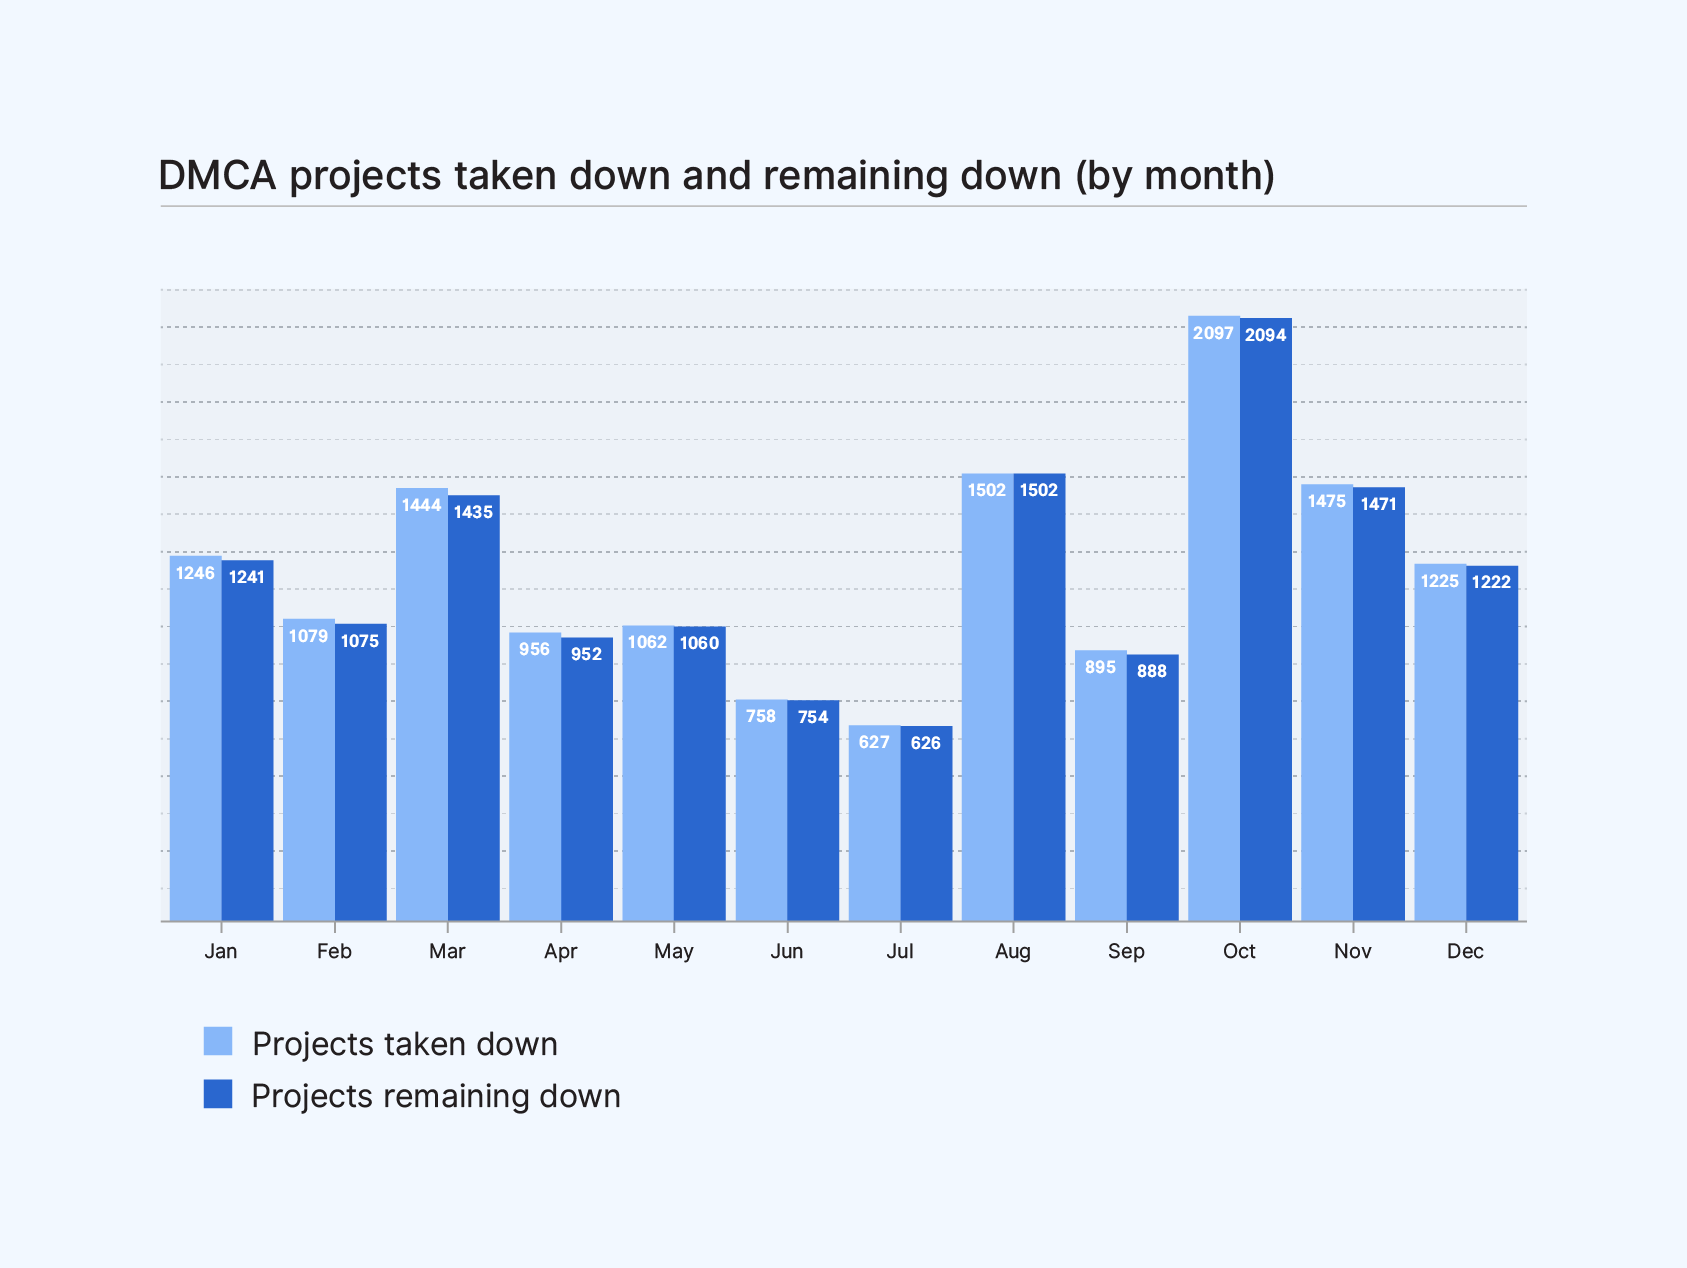 Bar graph of DMCA projects taken down and remaining down (by month) comparing projects taken down and projects remaining down.